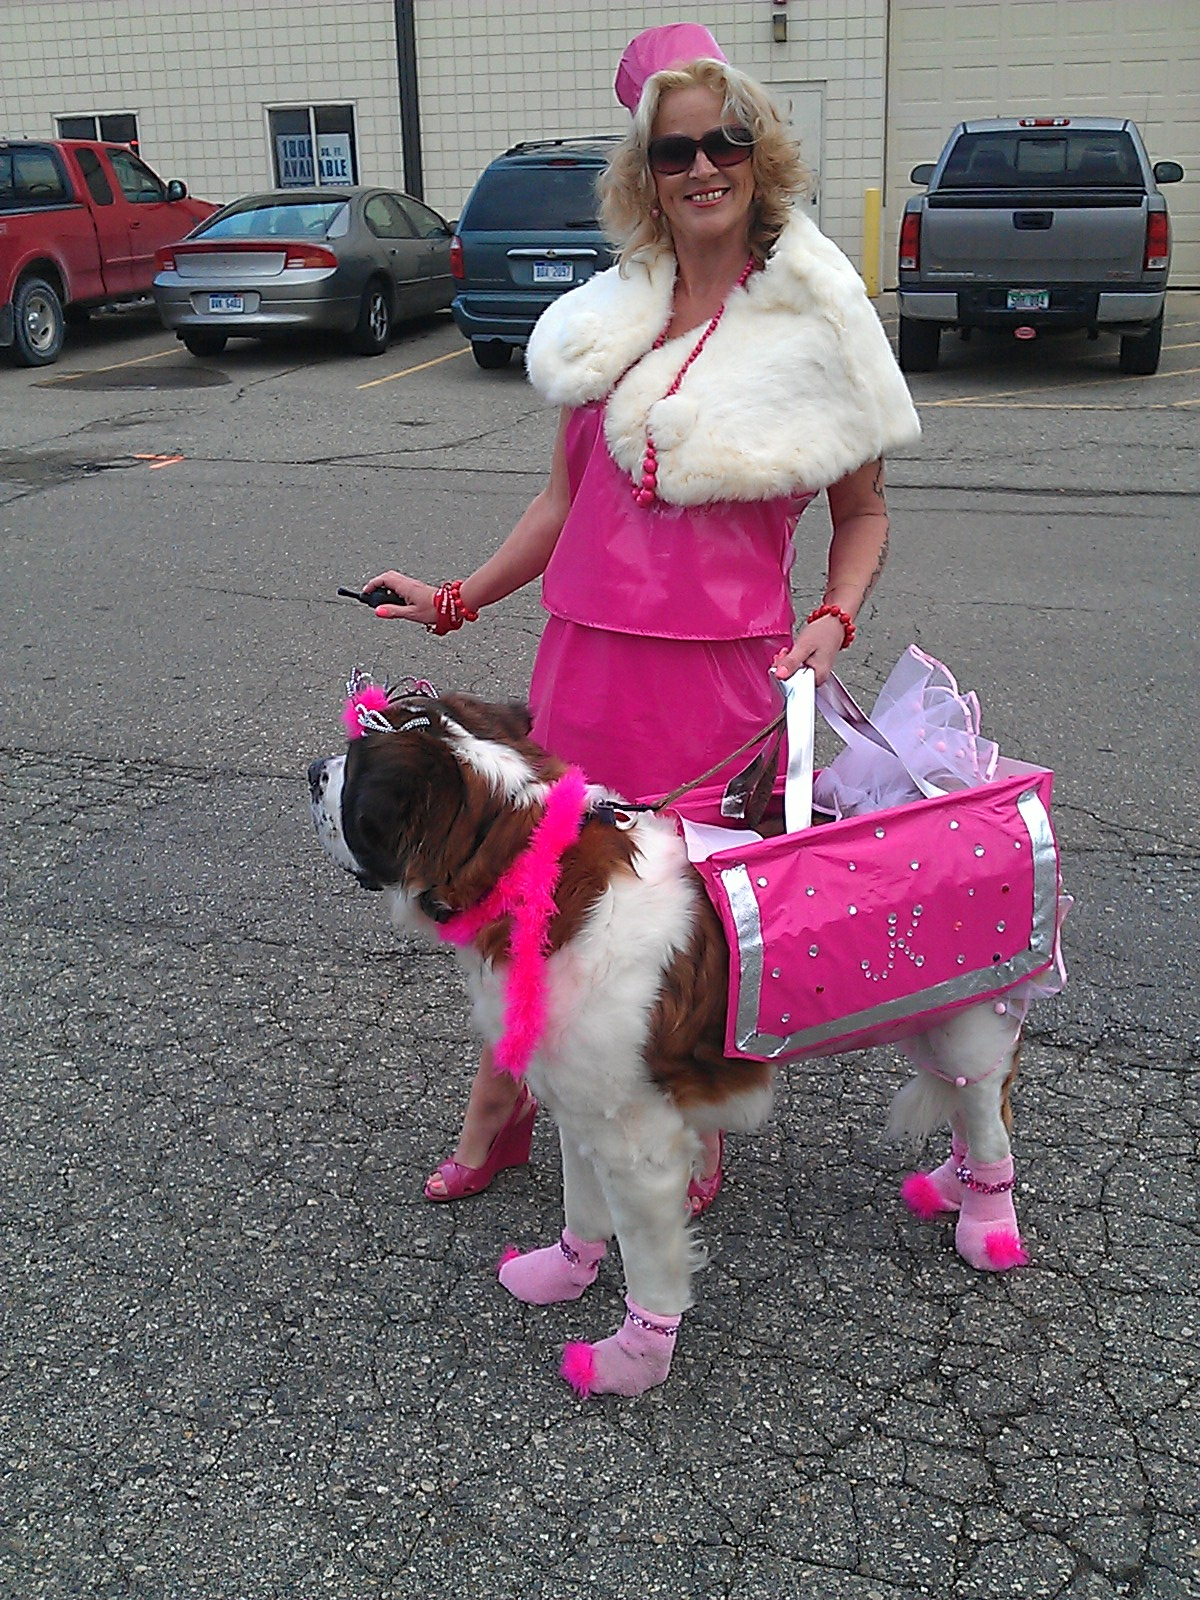 Dogs In Purses Best Purse Image Ccdbborg